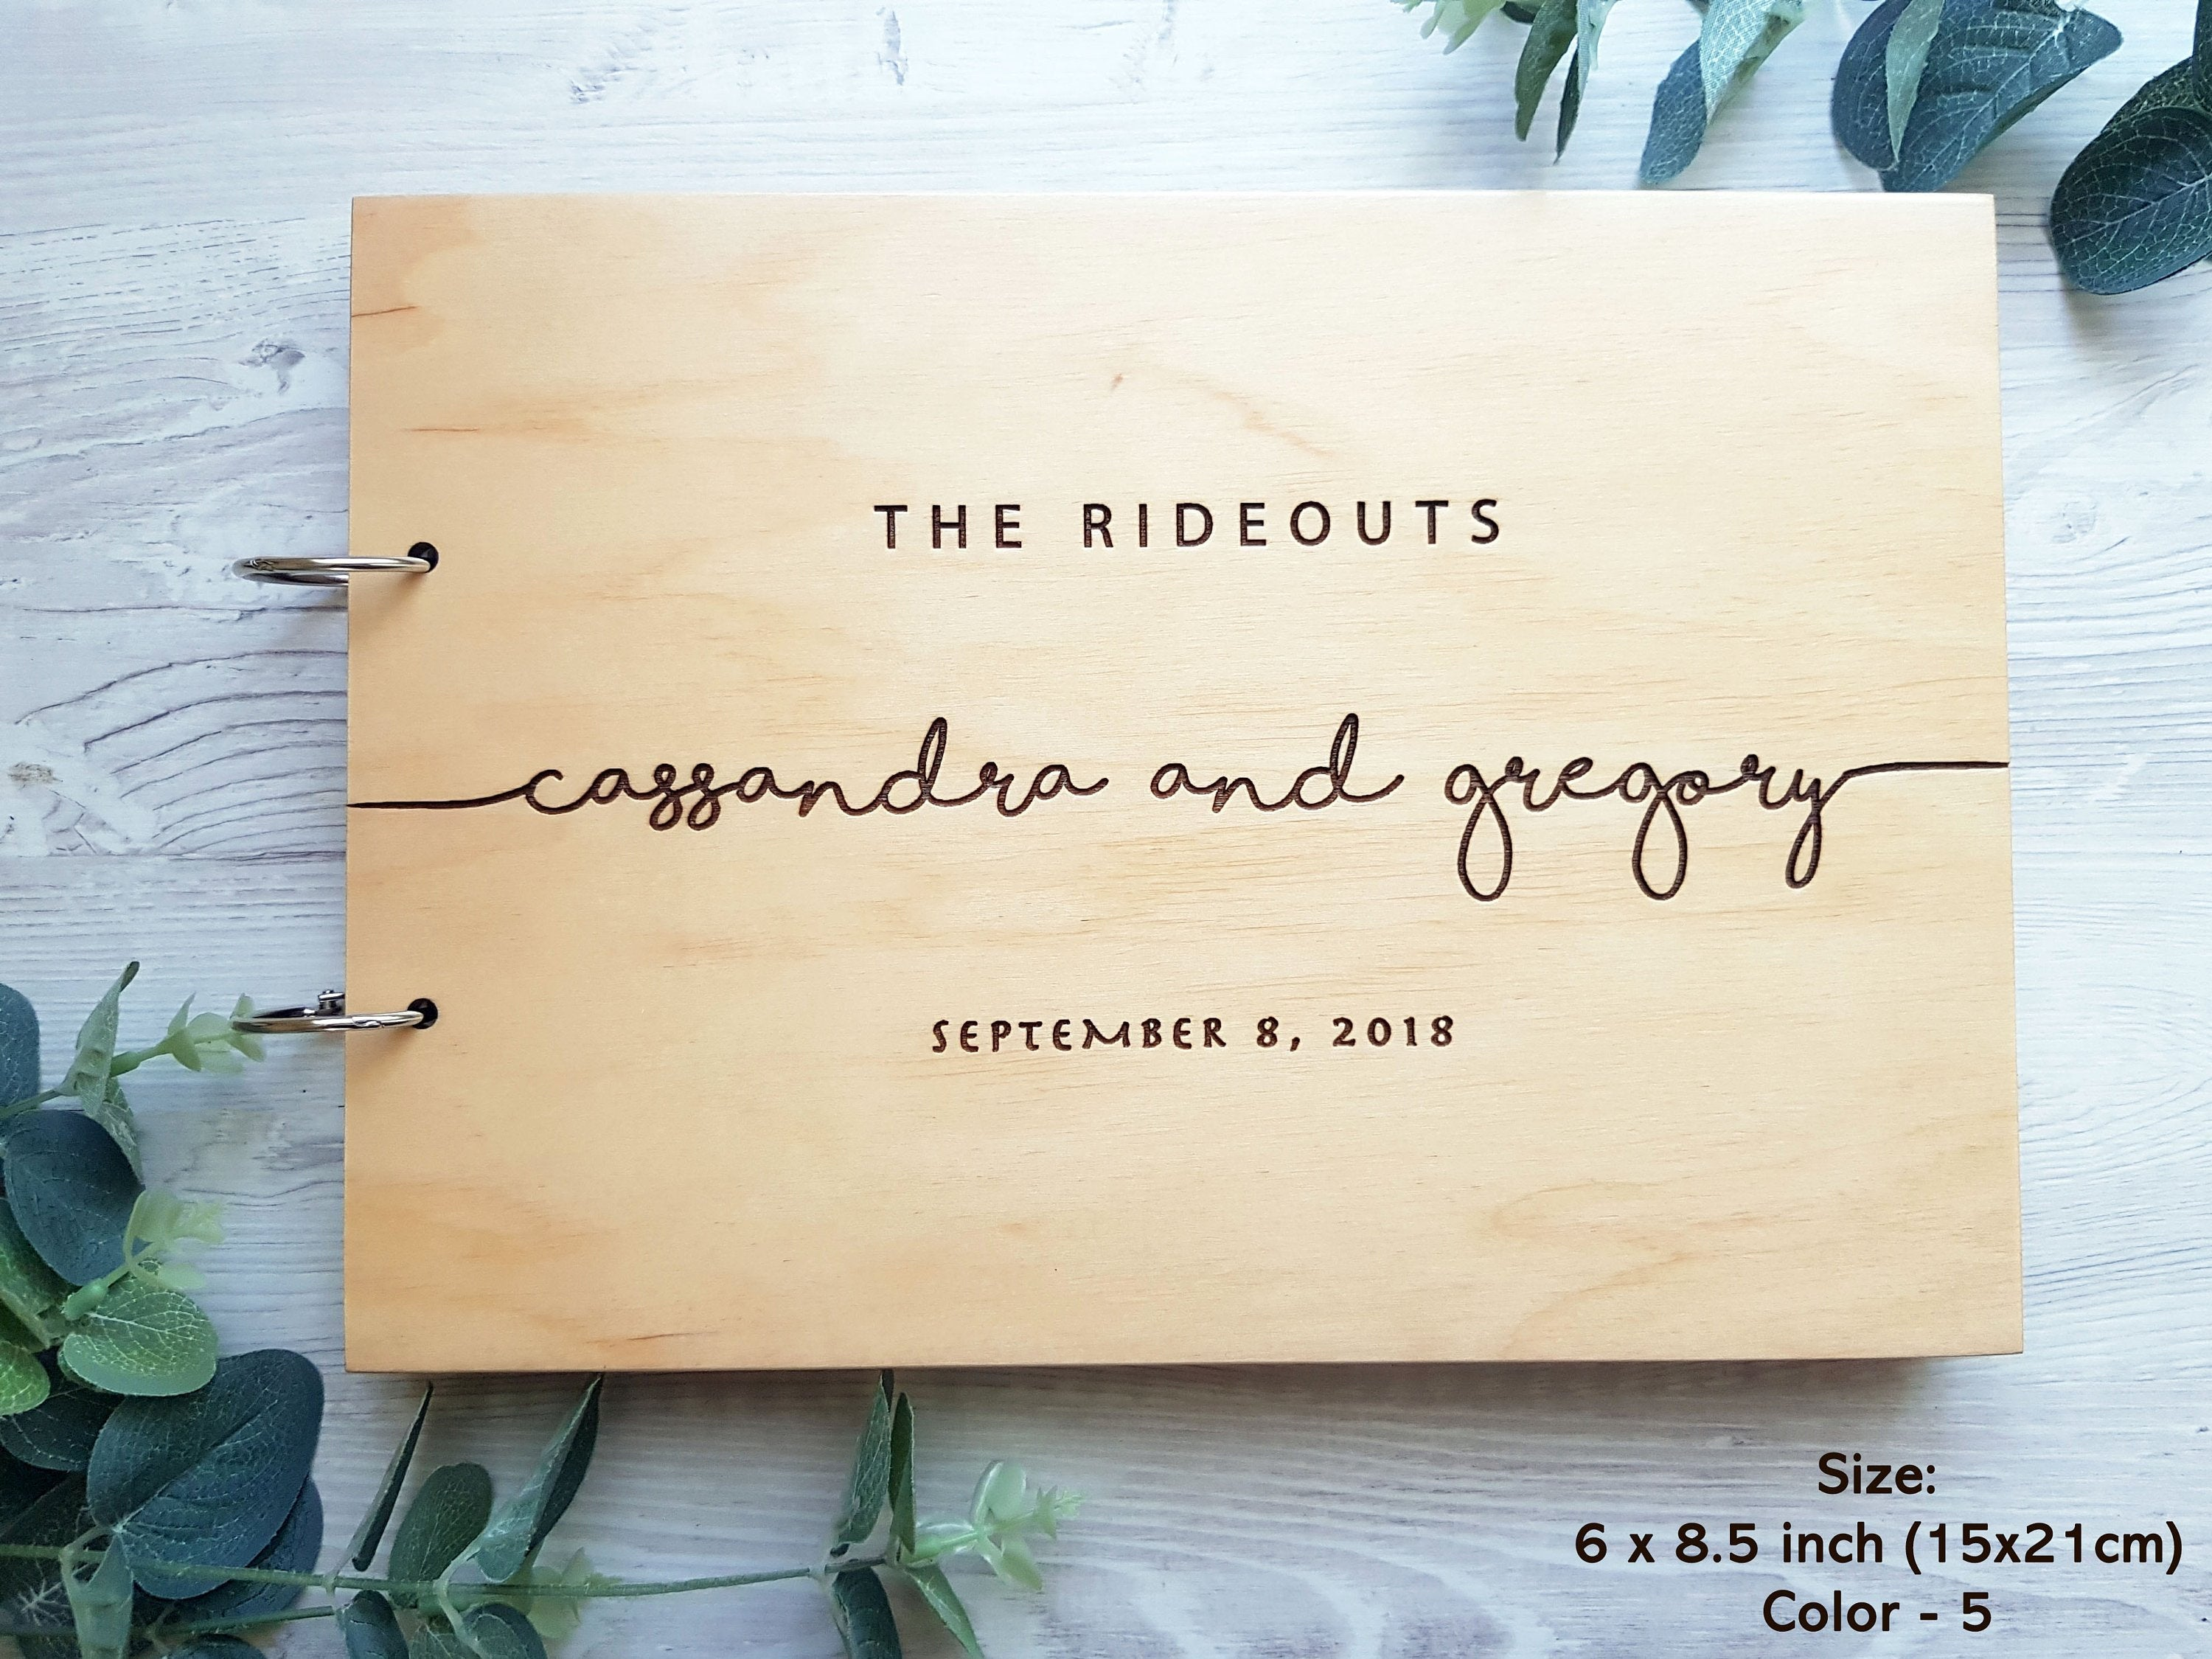 Wooden Wedding Guest Book, Laser Engrave Horizontal Wedding Book With Calligraphy Names, Hardcover Instant Photo Booth Album